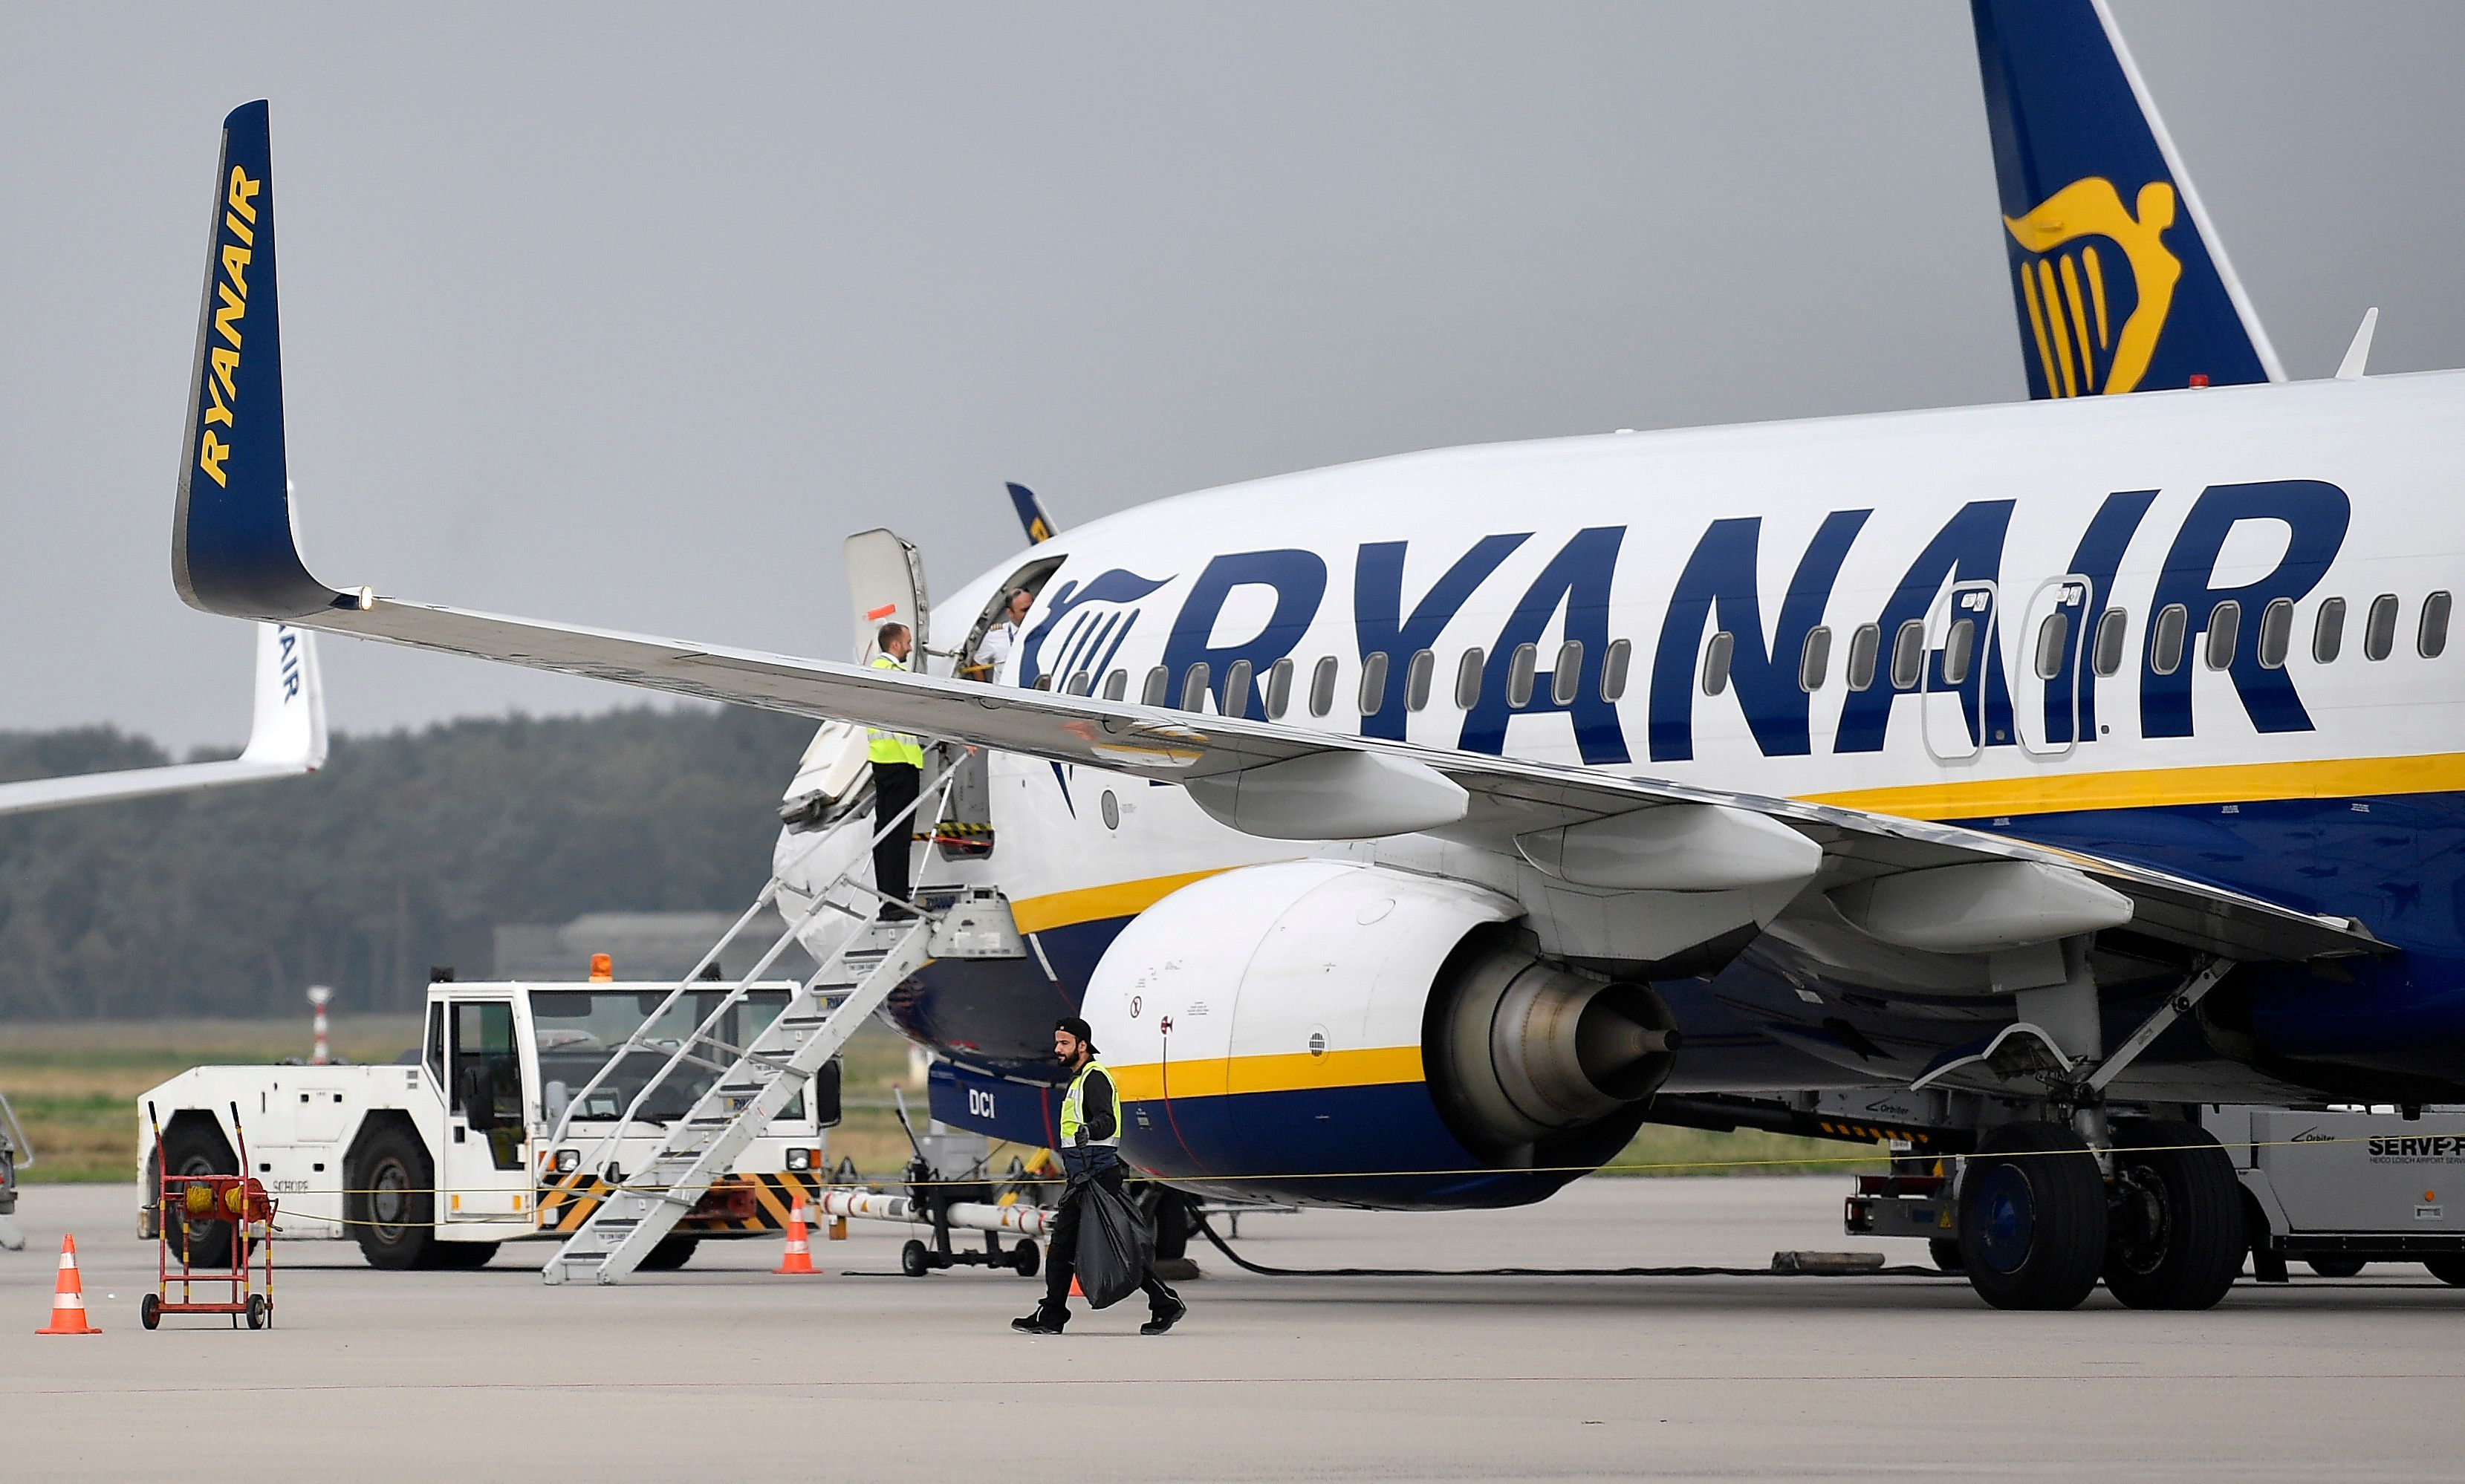 Ryanair passengers STRANDED as plane SEIZED by authorities over UNPAID debt